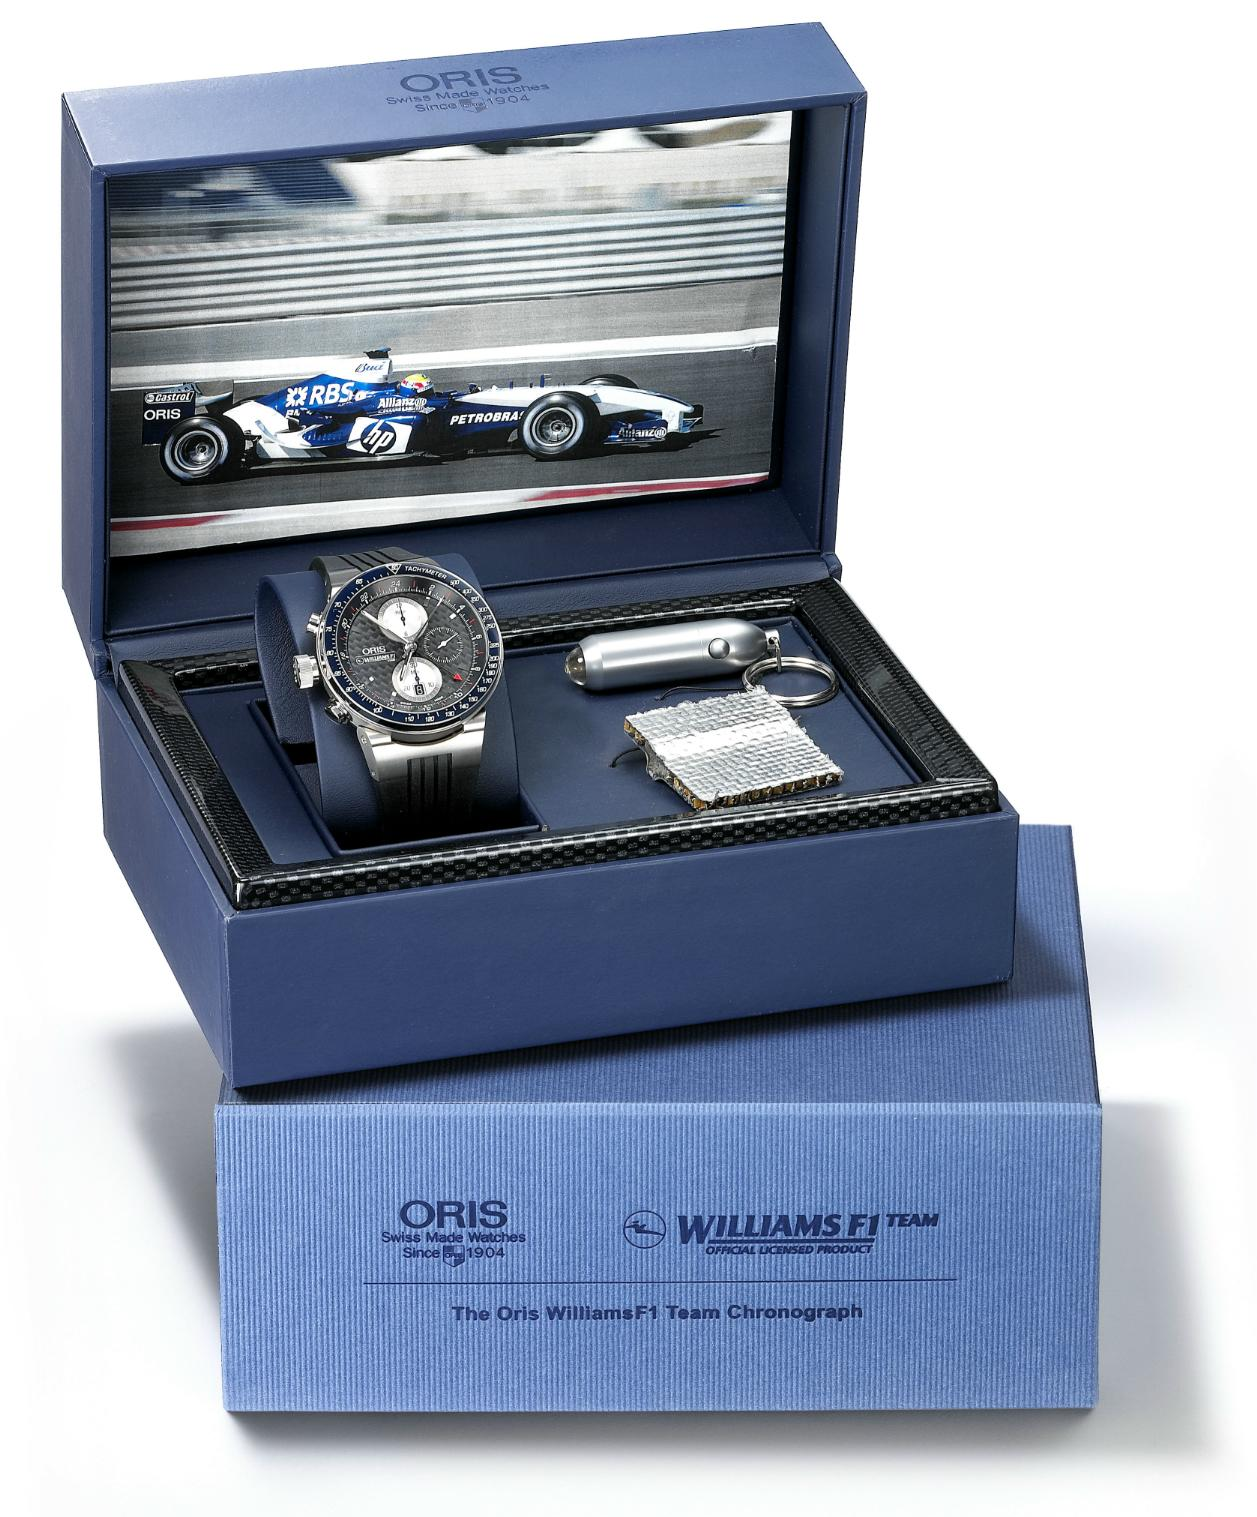 ORIS Williams F1 Team Lefty GMT Chronograph   Sep 12, 2 Leftyoris2